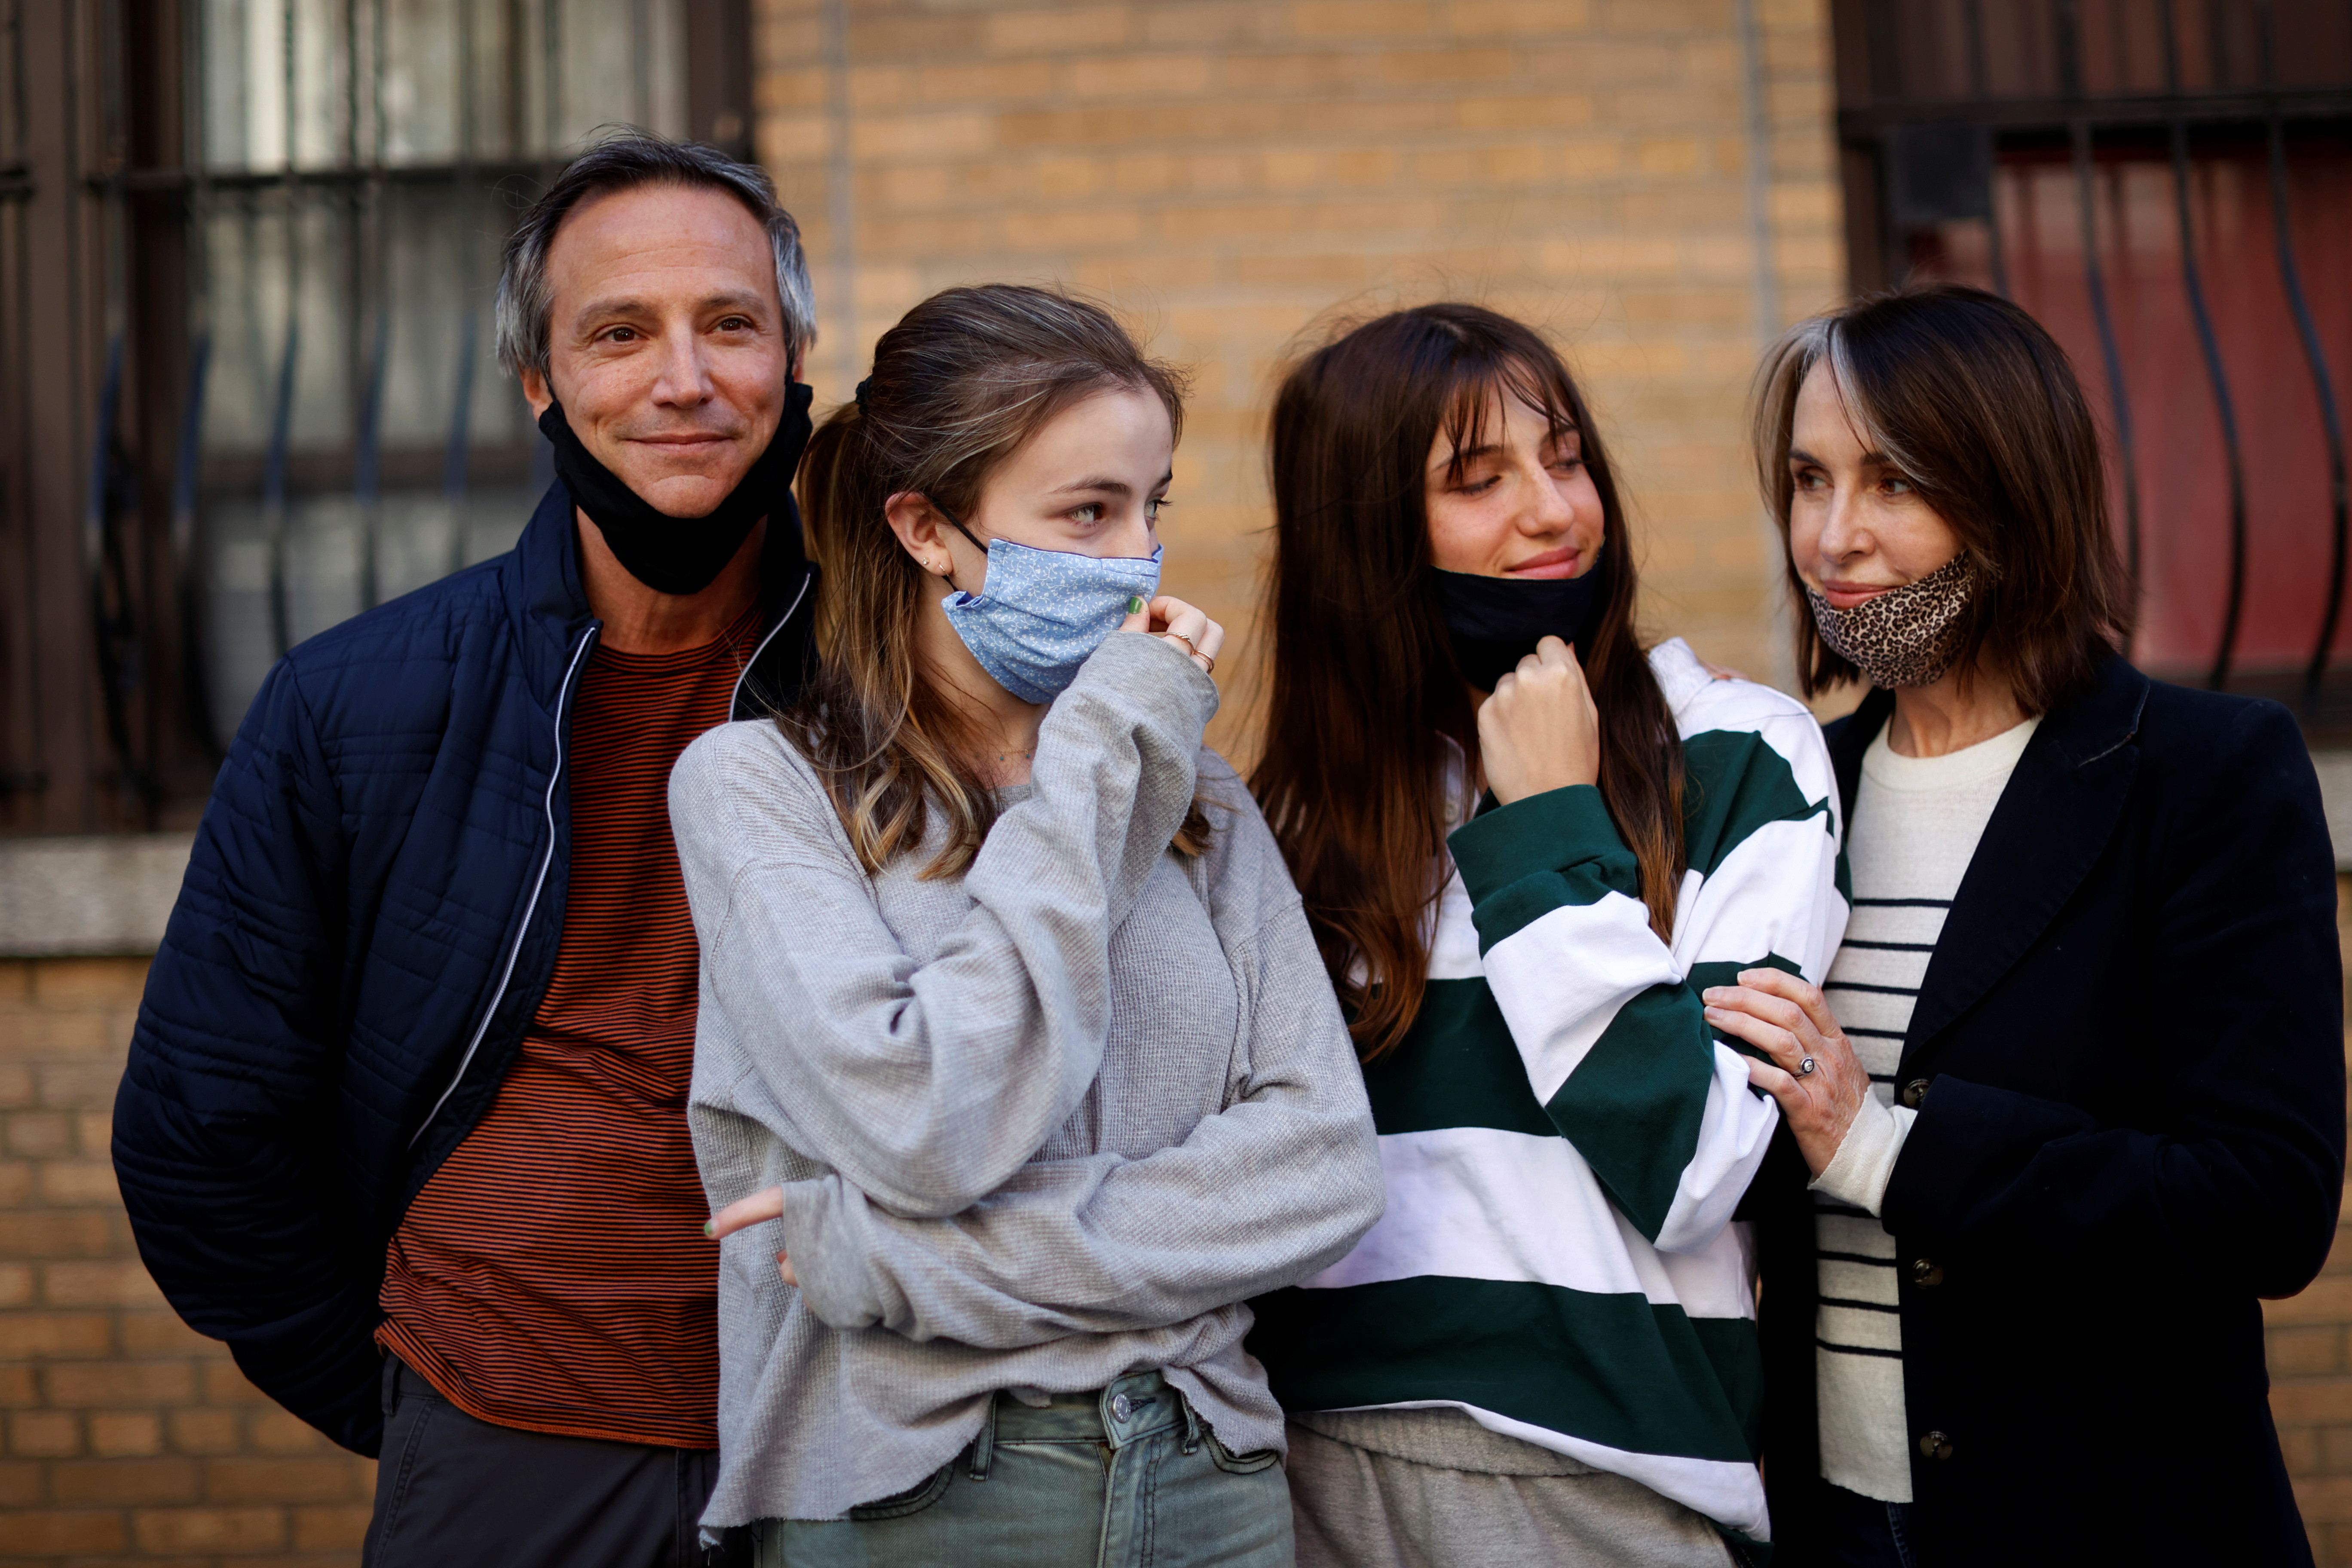 Maree Johnson-Baruch (R), a Broadway performer, poses with her family, husband Jason and teenage daughters Audra and Helena, all of whom have recovered from becoming sick with the coronavirus disease (COVID-19), outside their home in Manhattan in New York City, New York, U.S., May 5, 2020. Picture taken May 5, 2020. REUTERS/Mike Segar - RC2MJG9H06L4